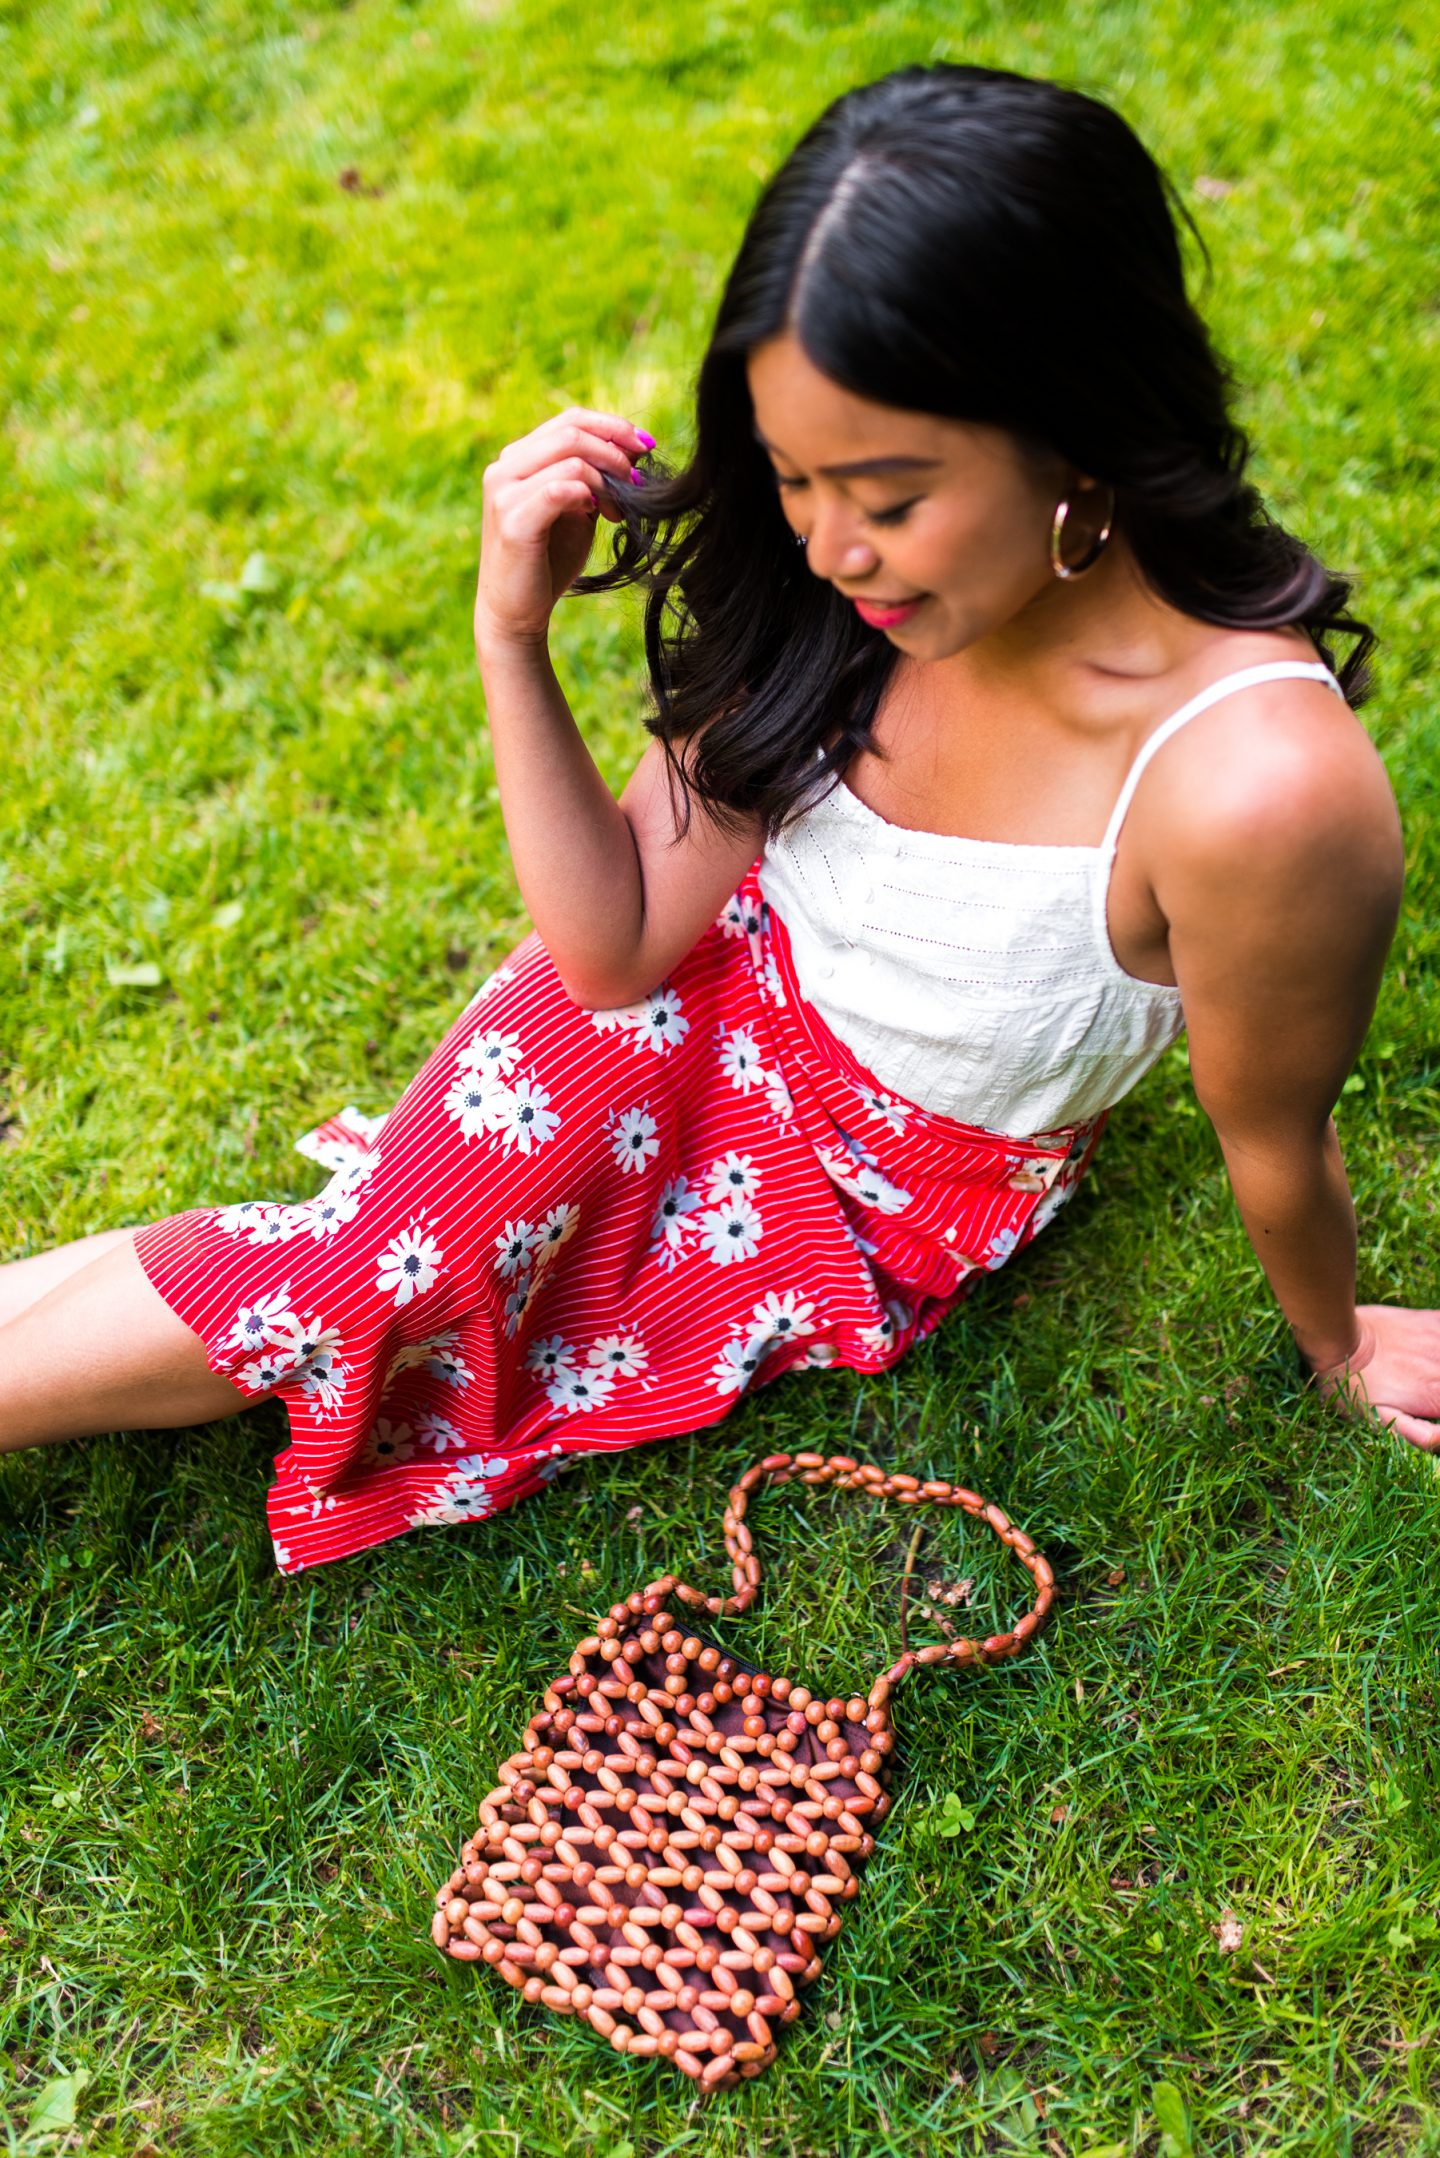 Madewell Skirt - 4th of July Outfit Ideas - Petite Style